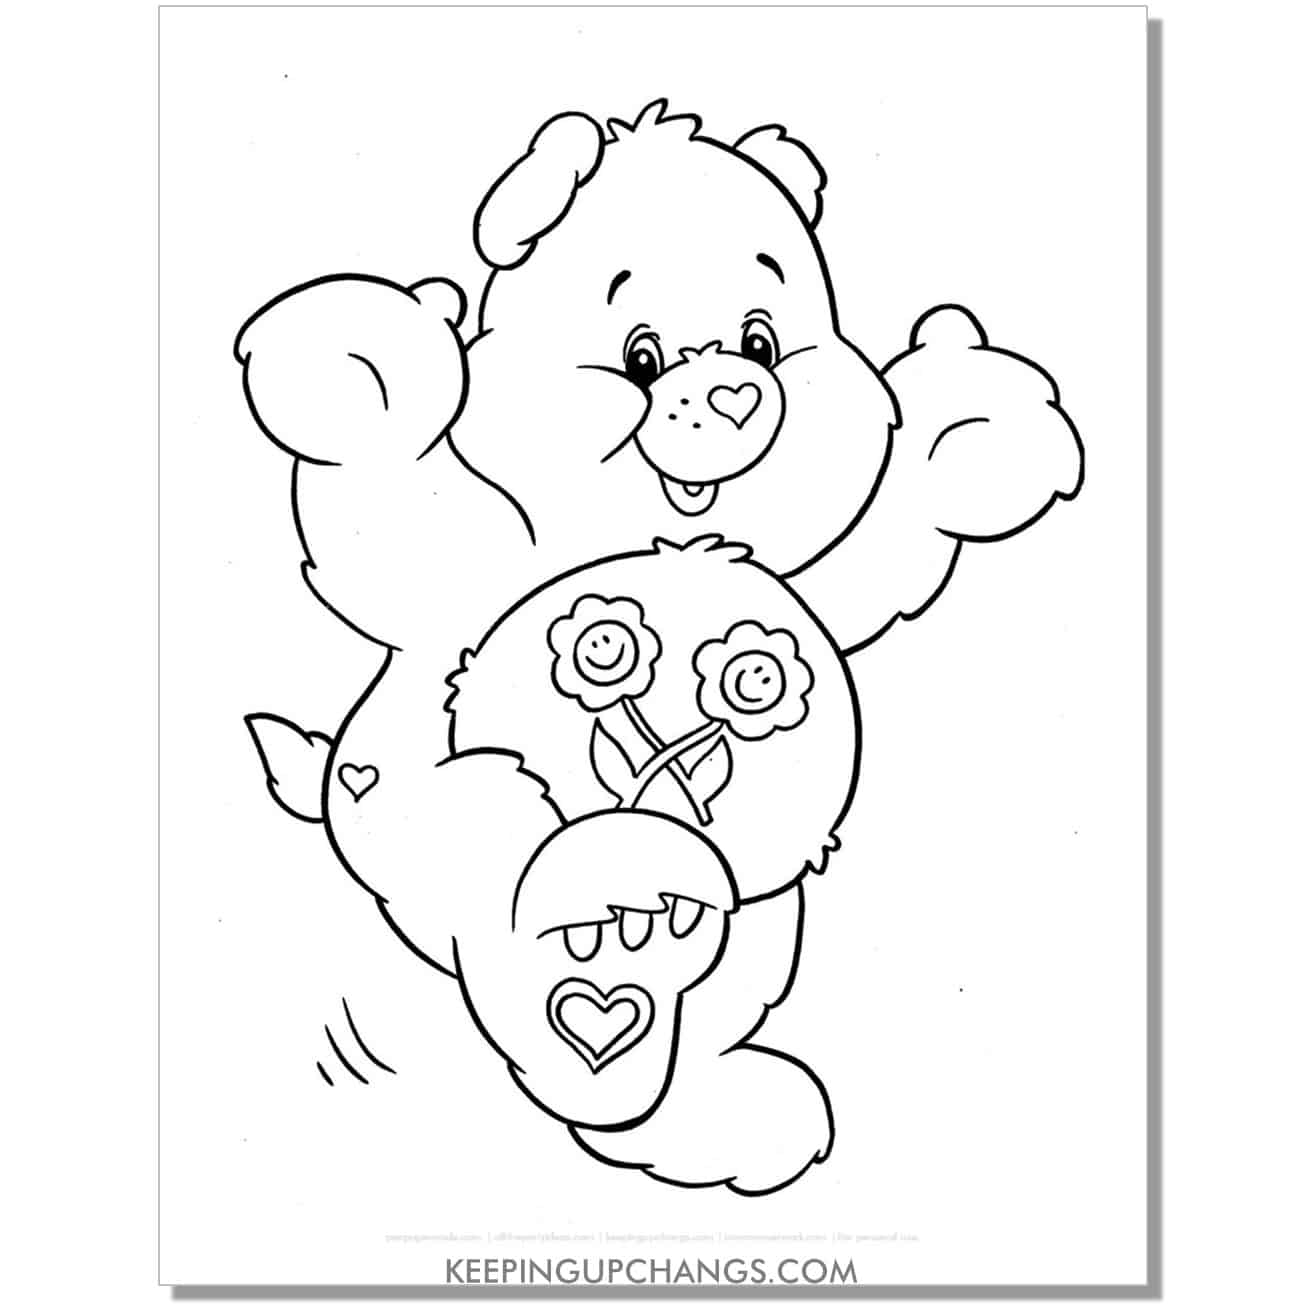 friend bear with hands up coloring page.